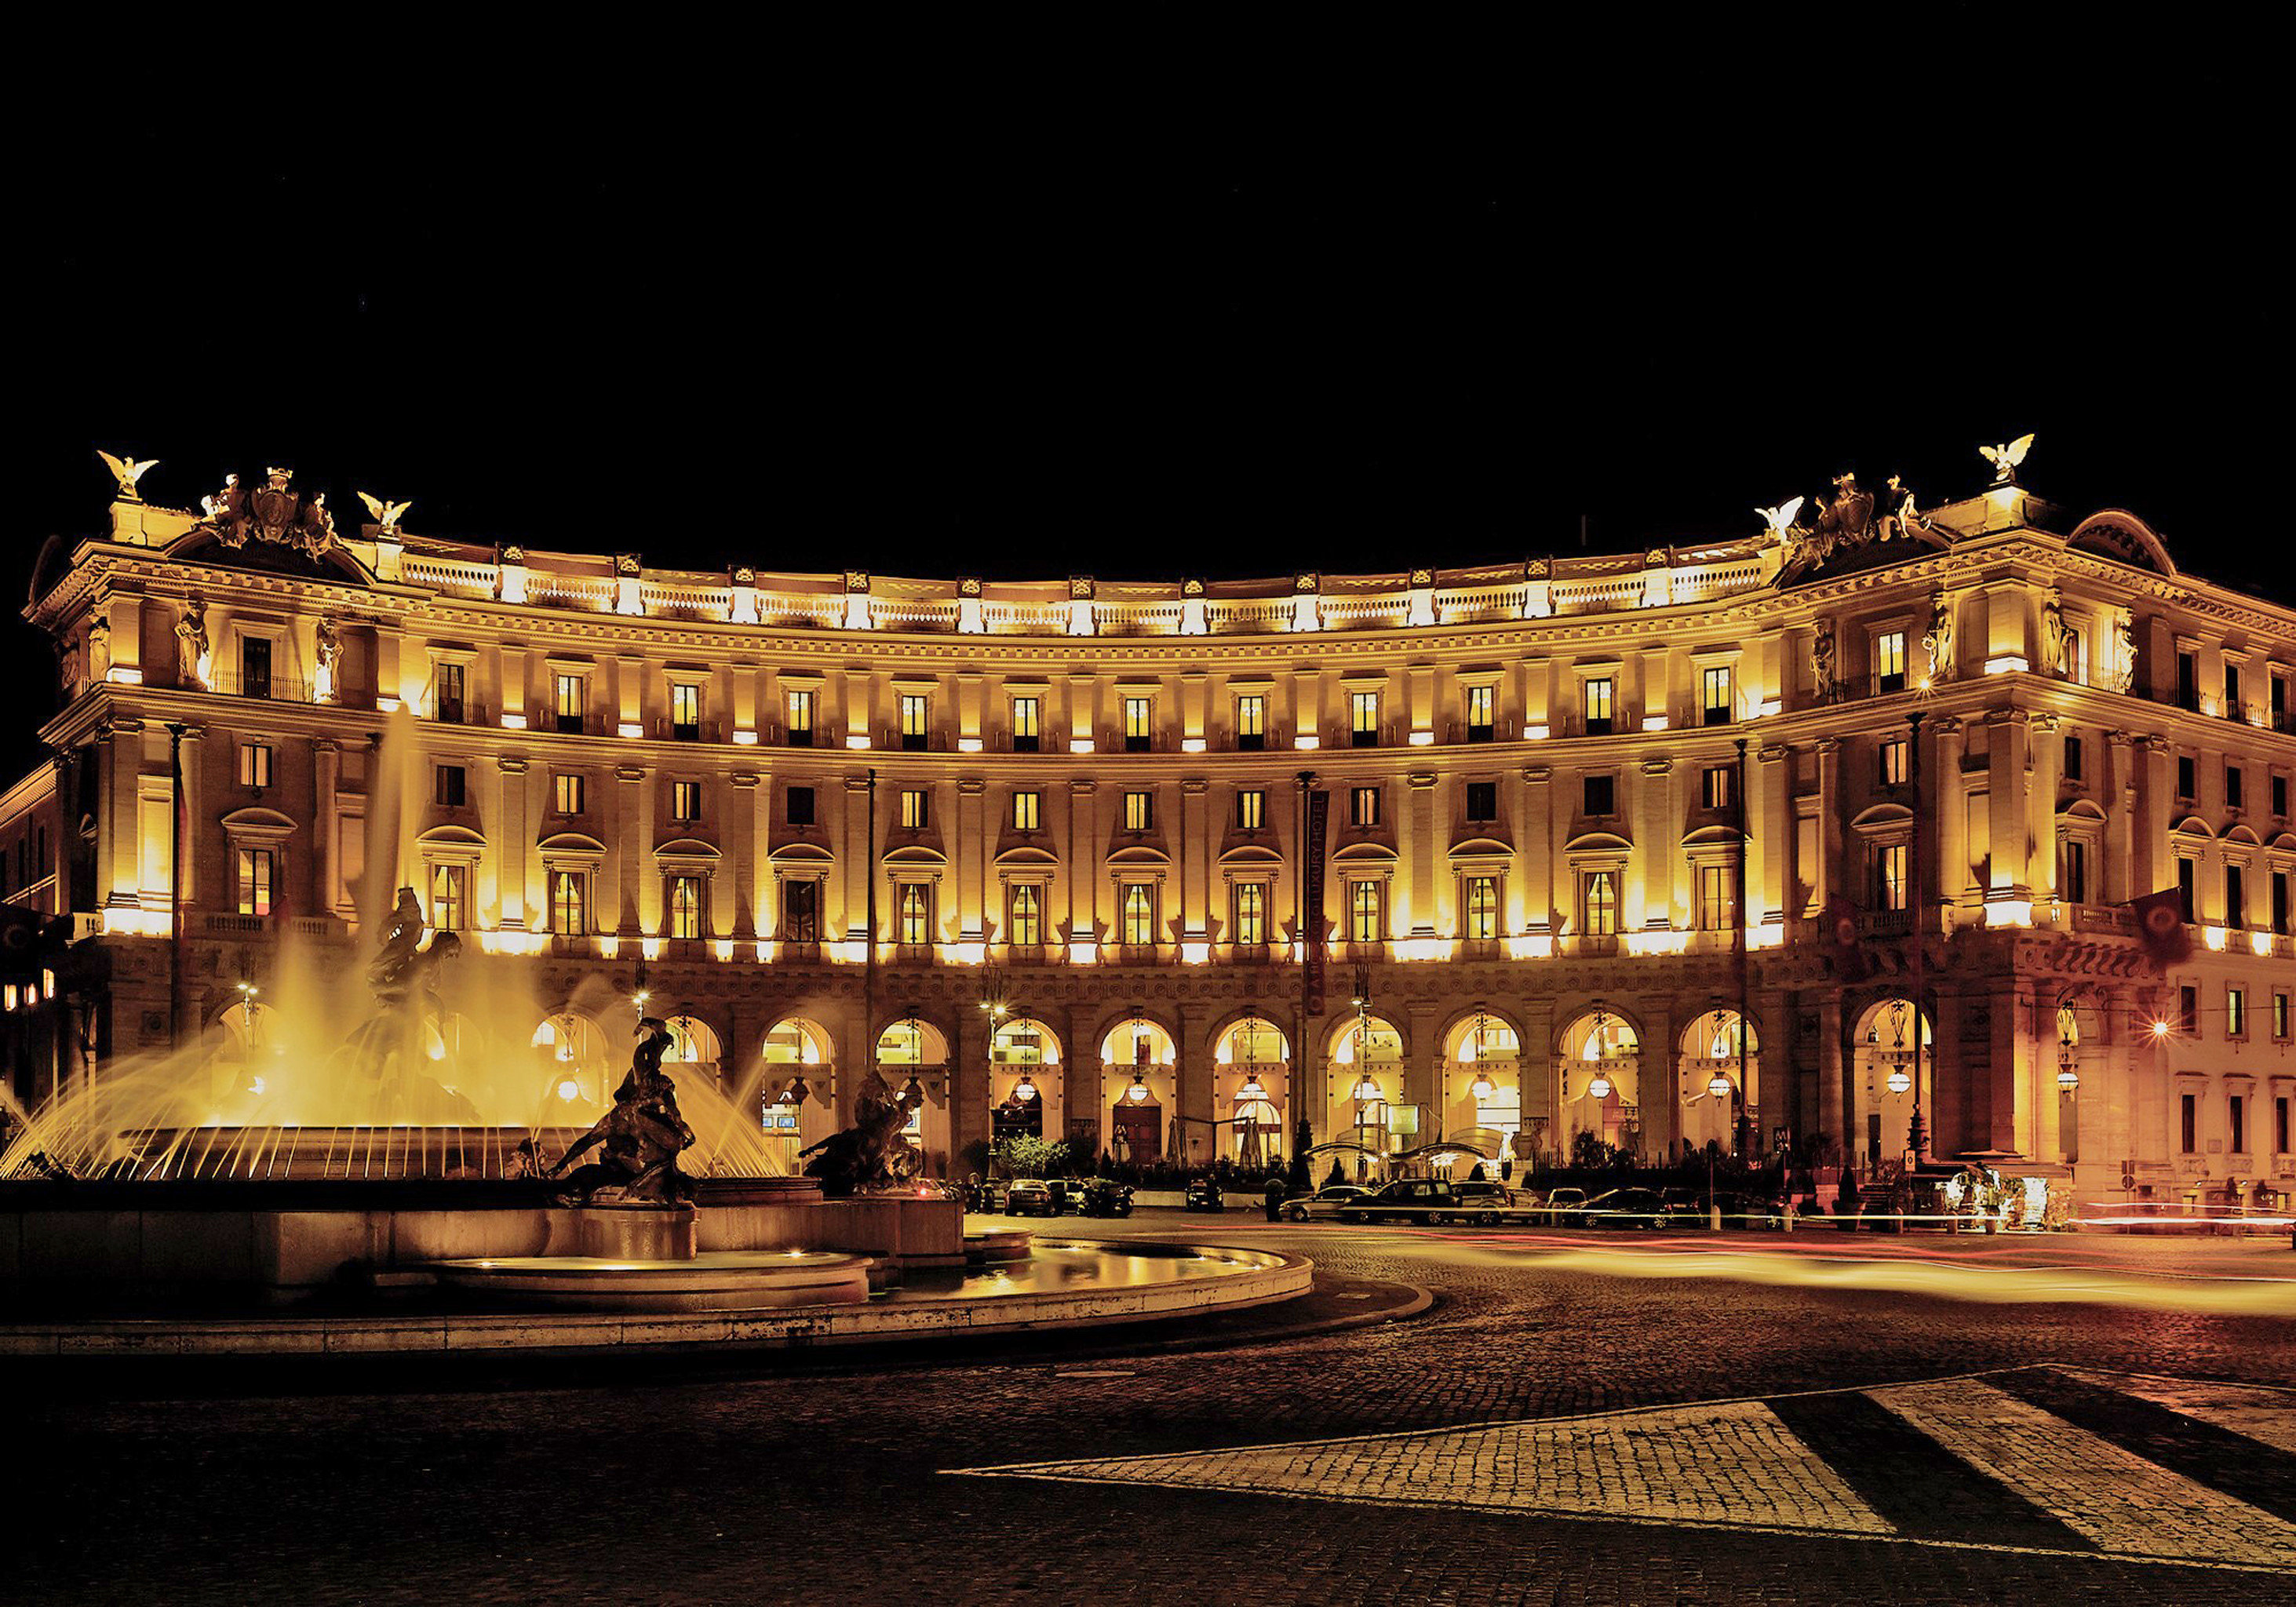 Boutique Hotels City Elegant Grounds Italy Luxury Luxury Travel Romantic Hotels Rome night landmark lit plaza palace metropolis evening opera house light cityscape town square ancient history government building